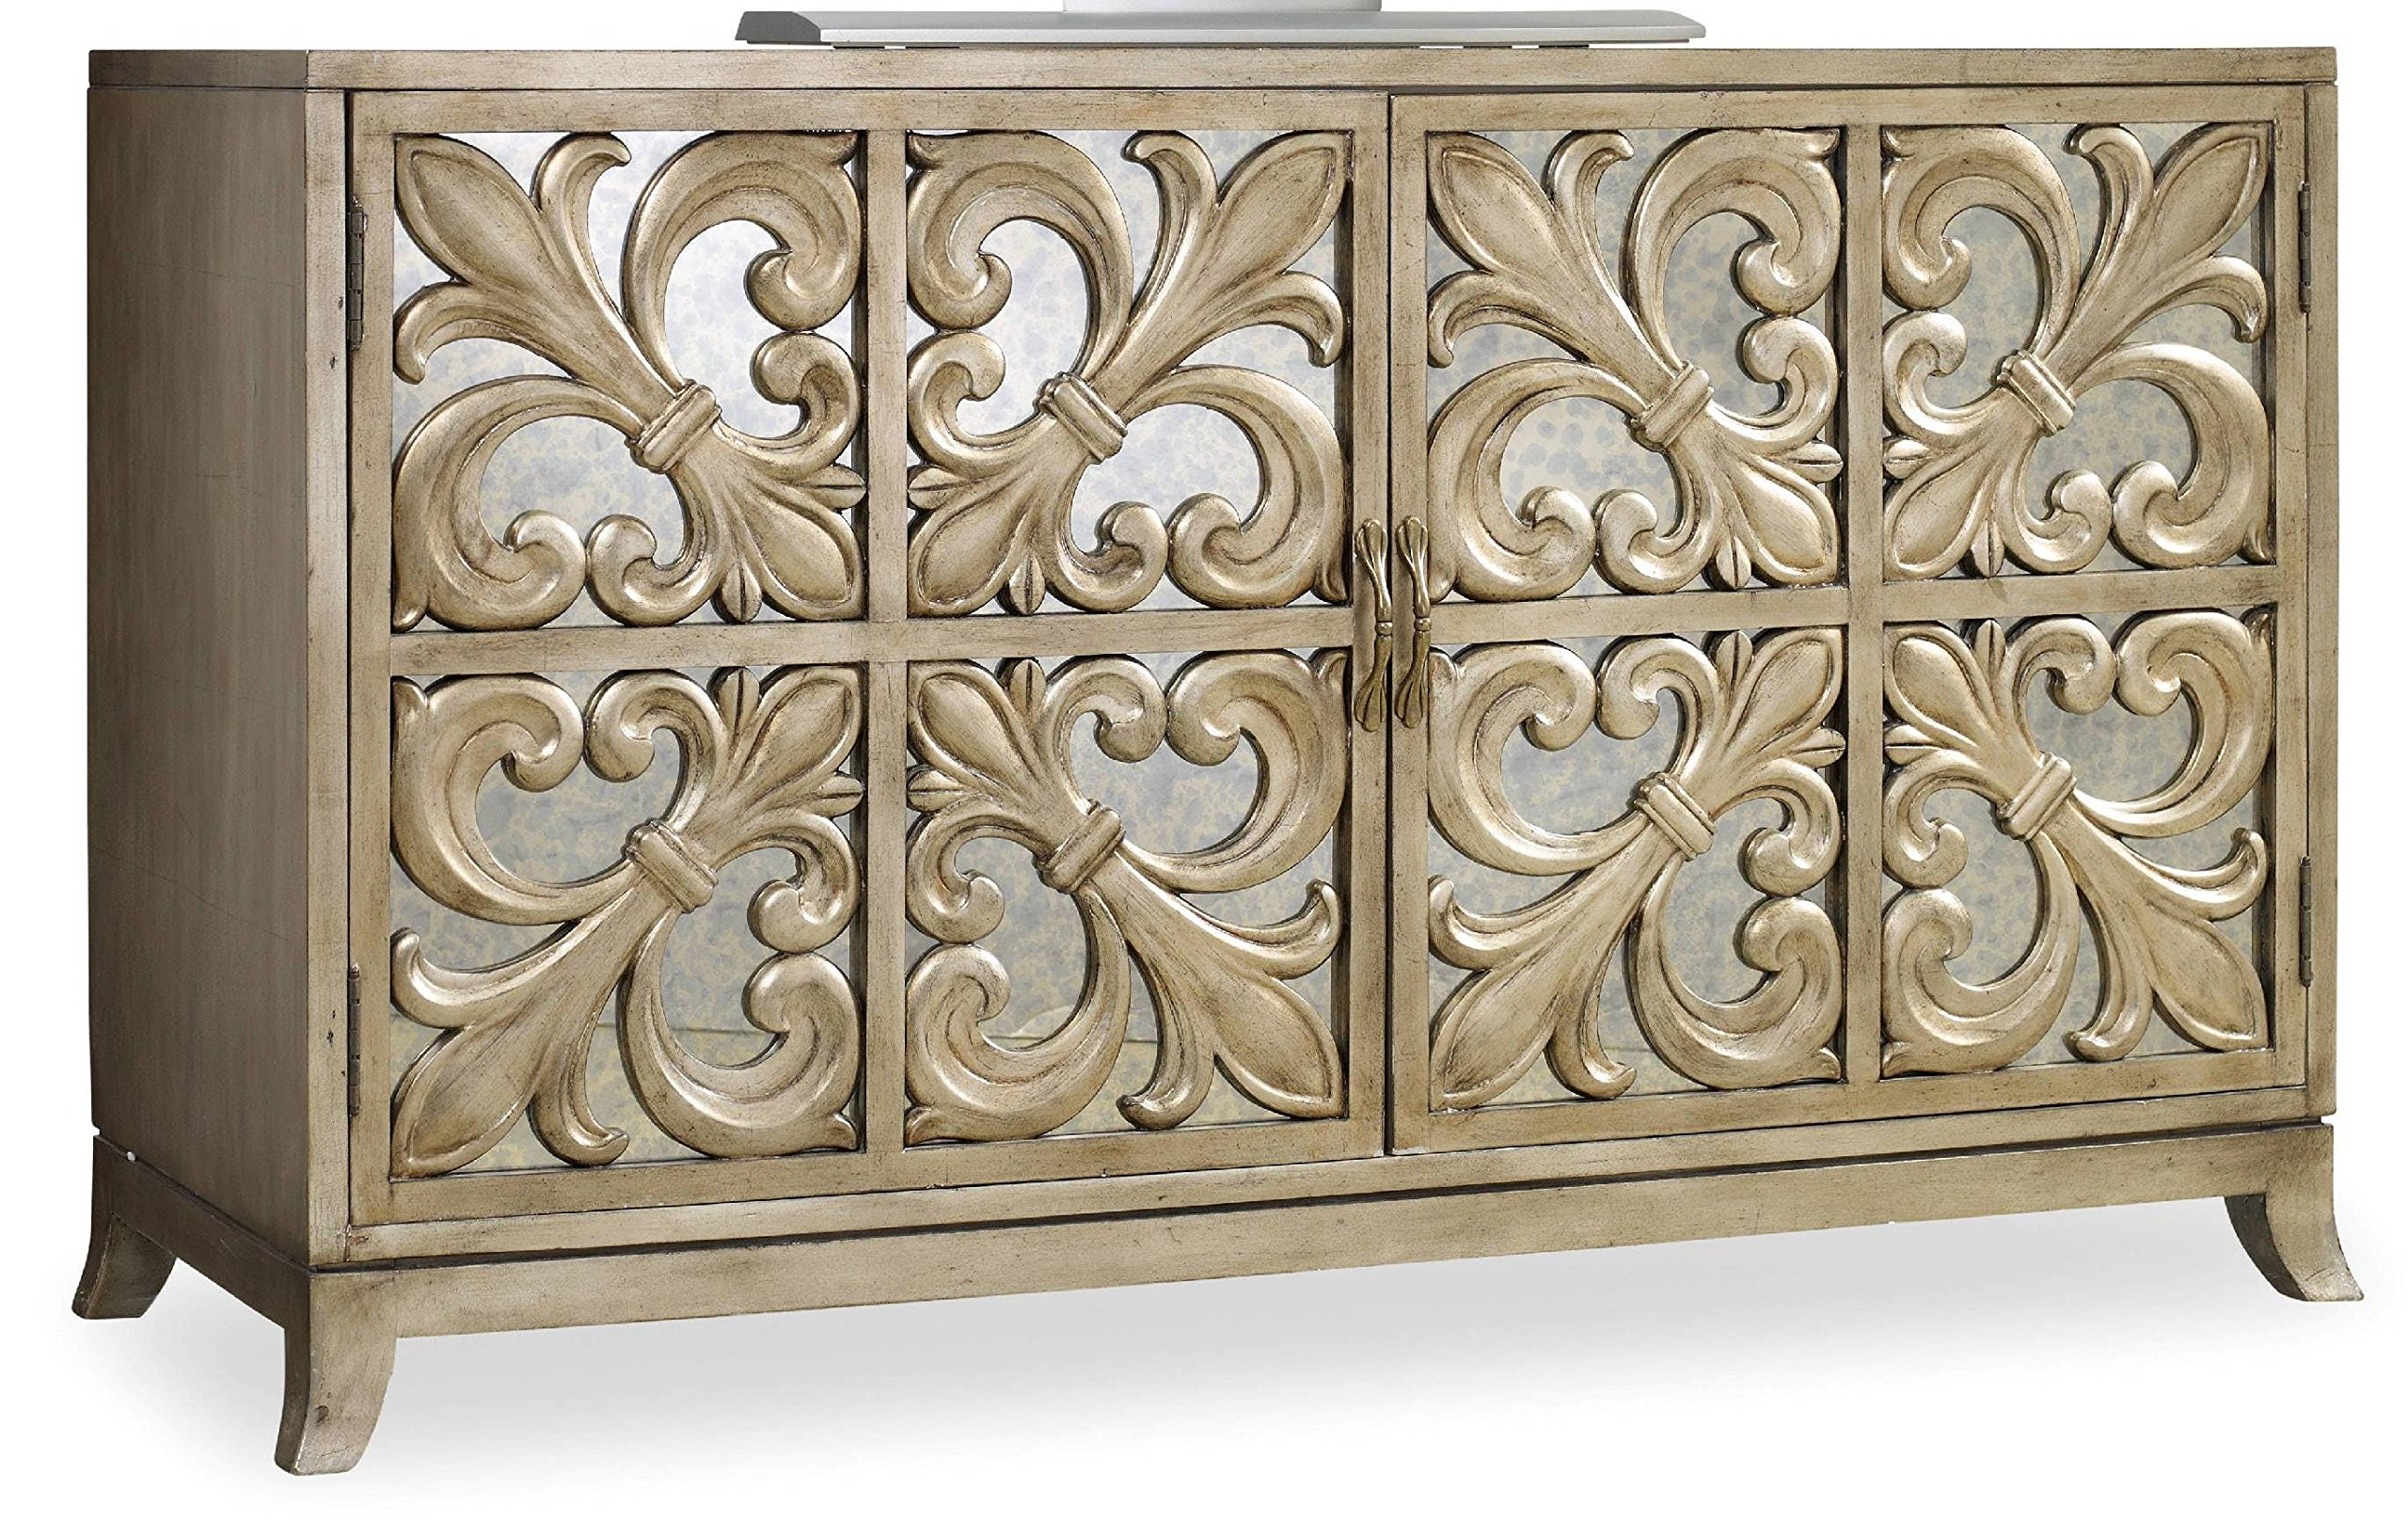 gallerie mirrored furniture find accent table get quotations hooker melange fleur lis credenza metallic target gold side threshold floor lamp coffee with nest tables underneath